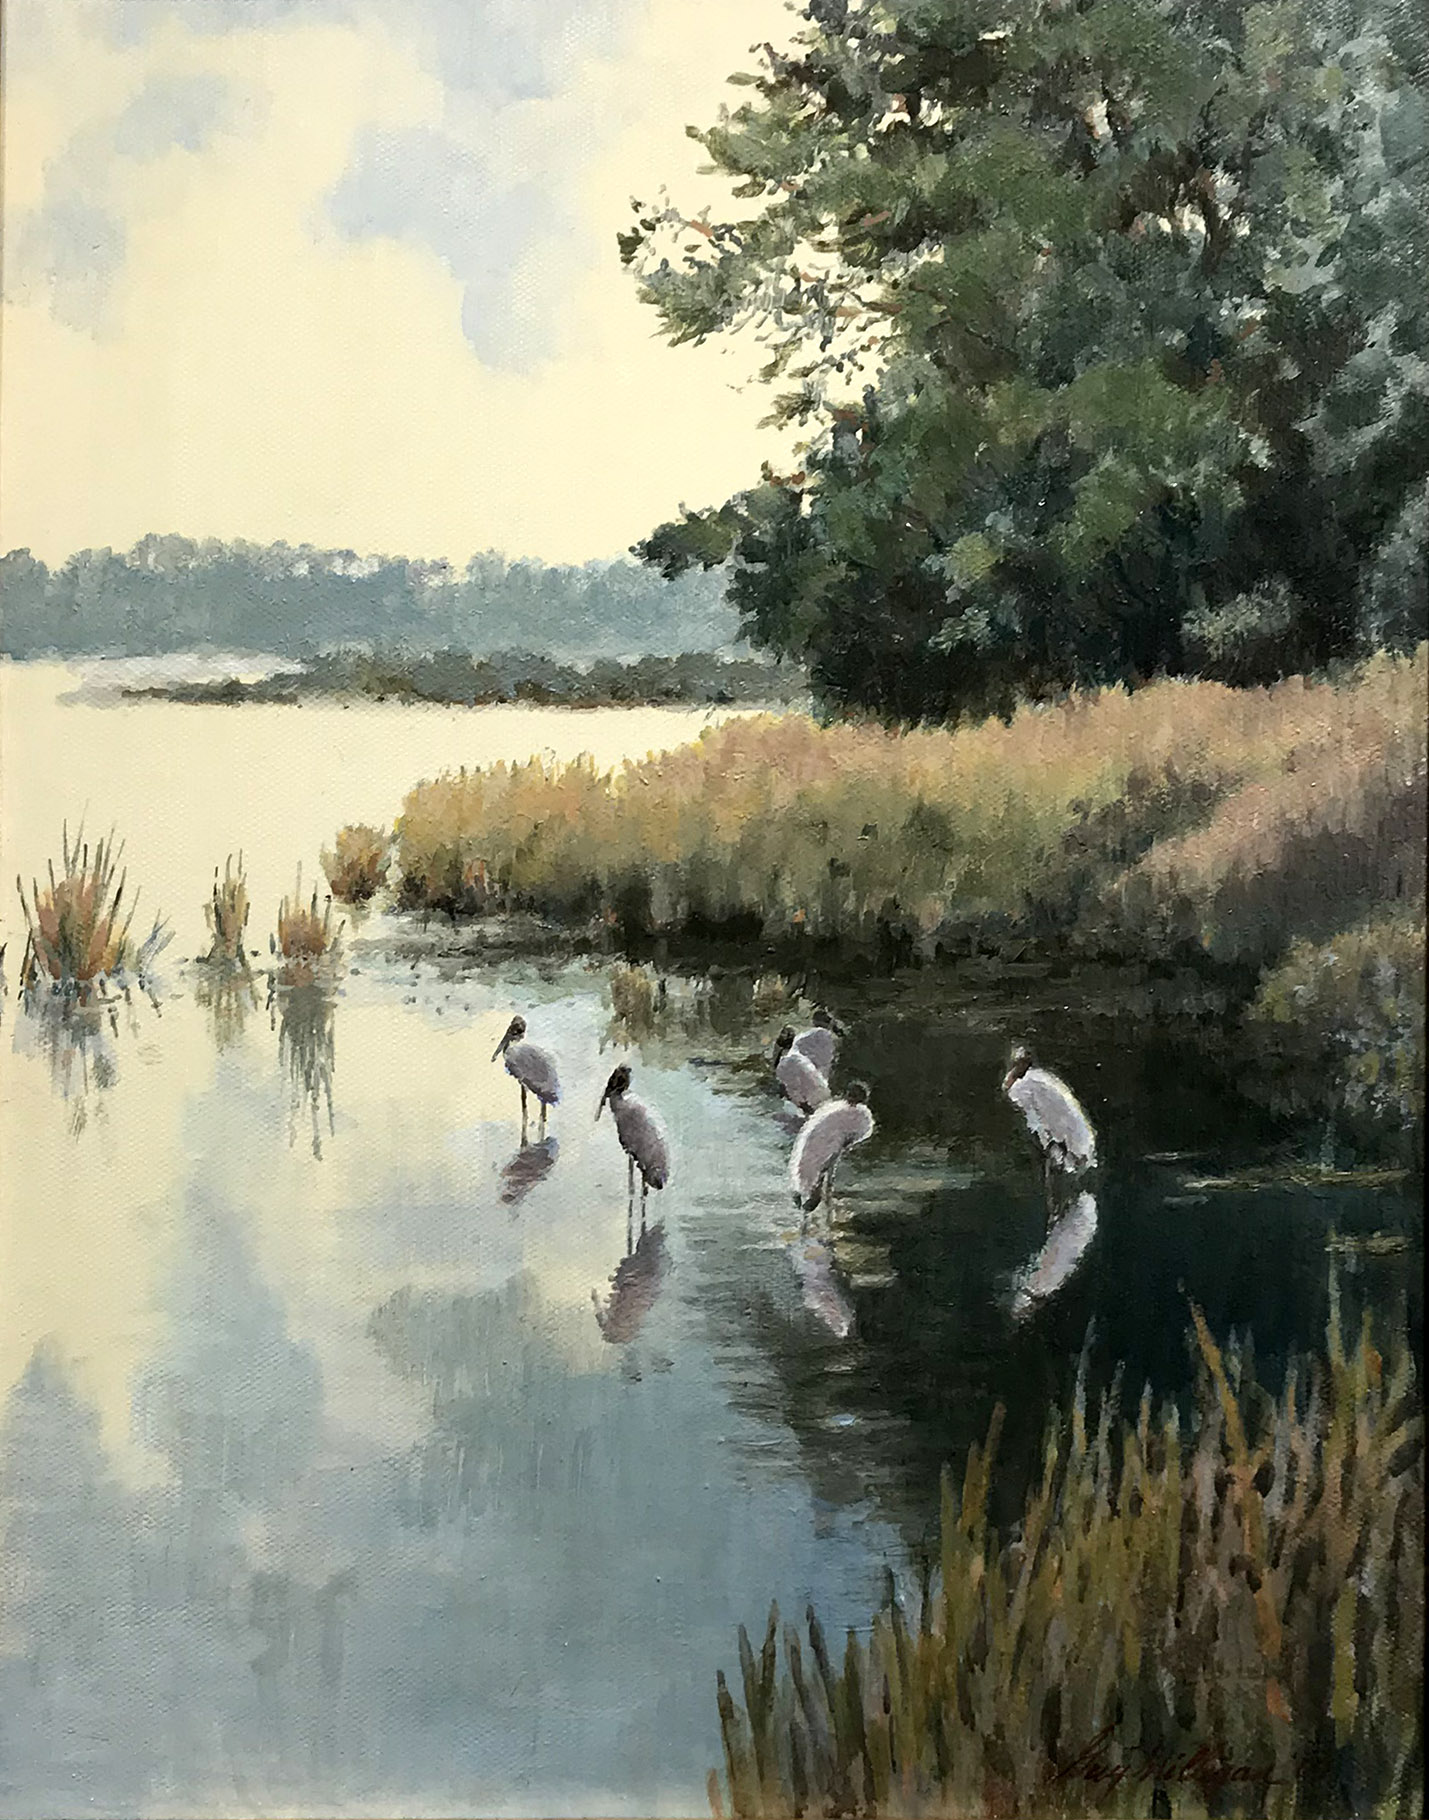 Guy Mulligan, Woodstorks in Marsh